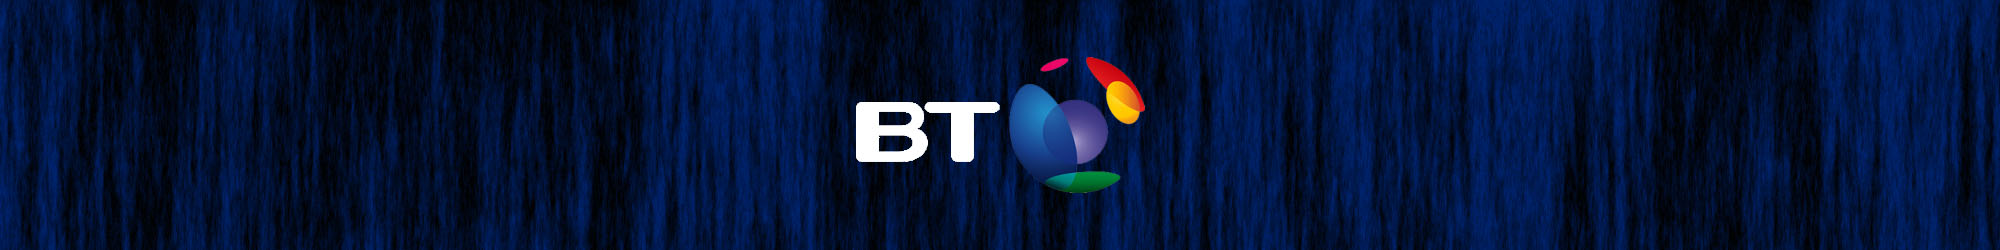 BT voip phone system